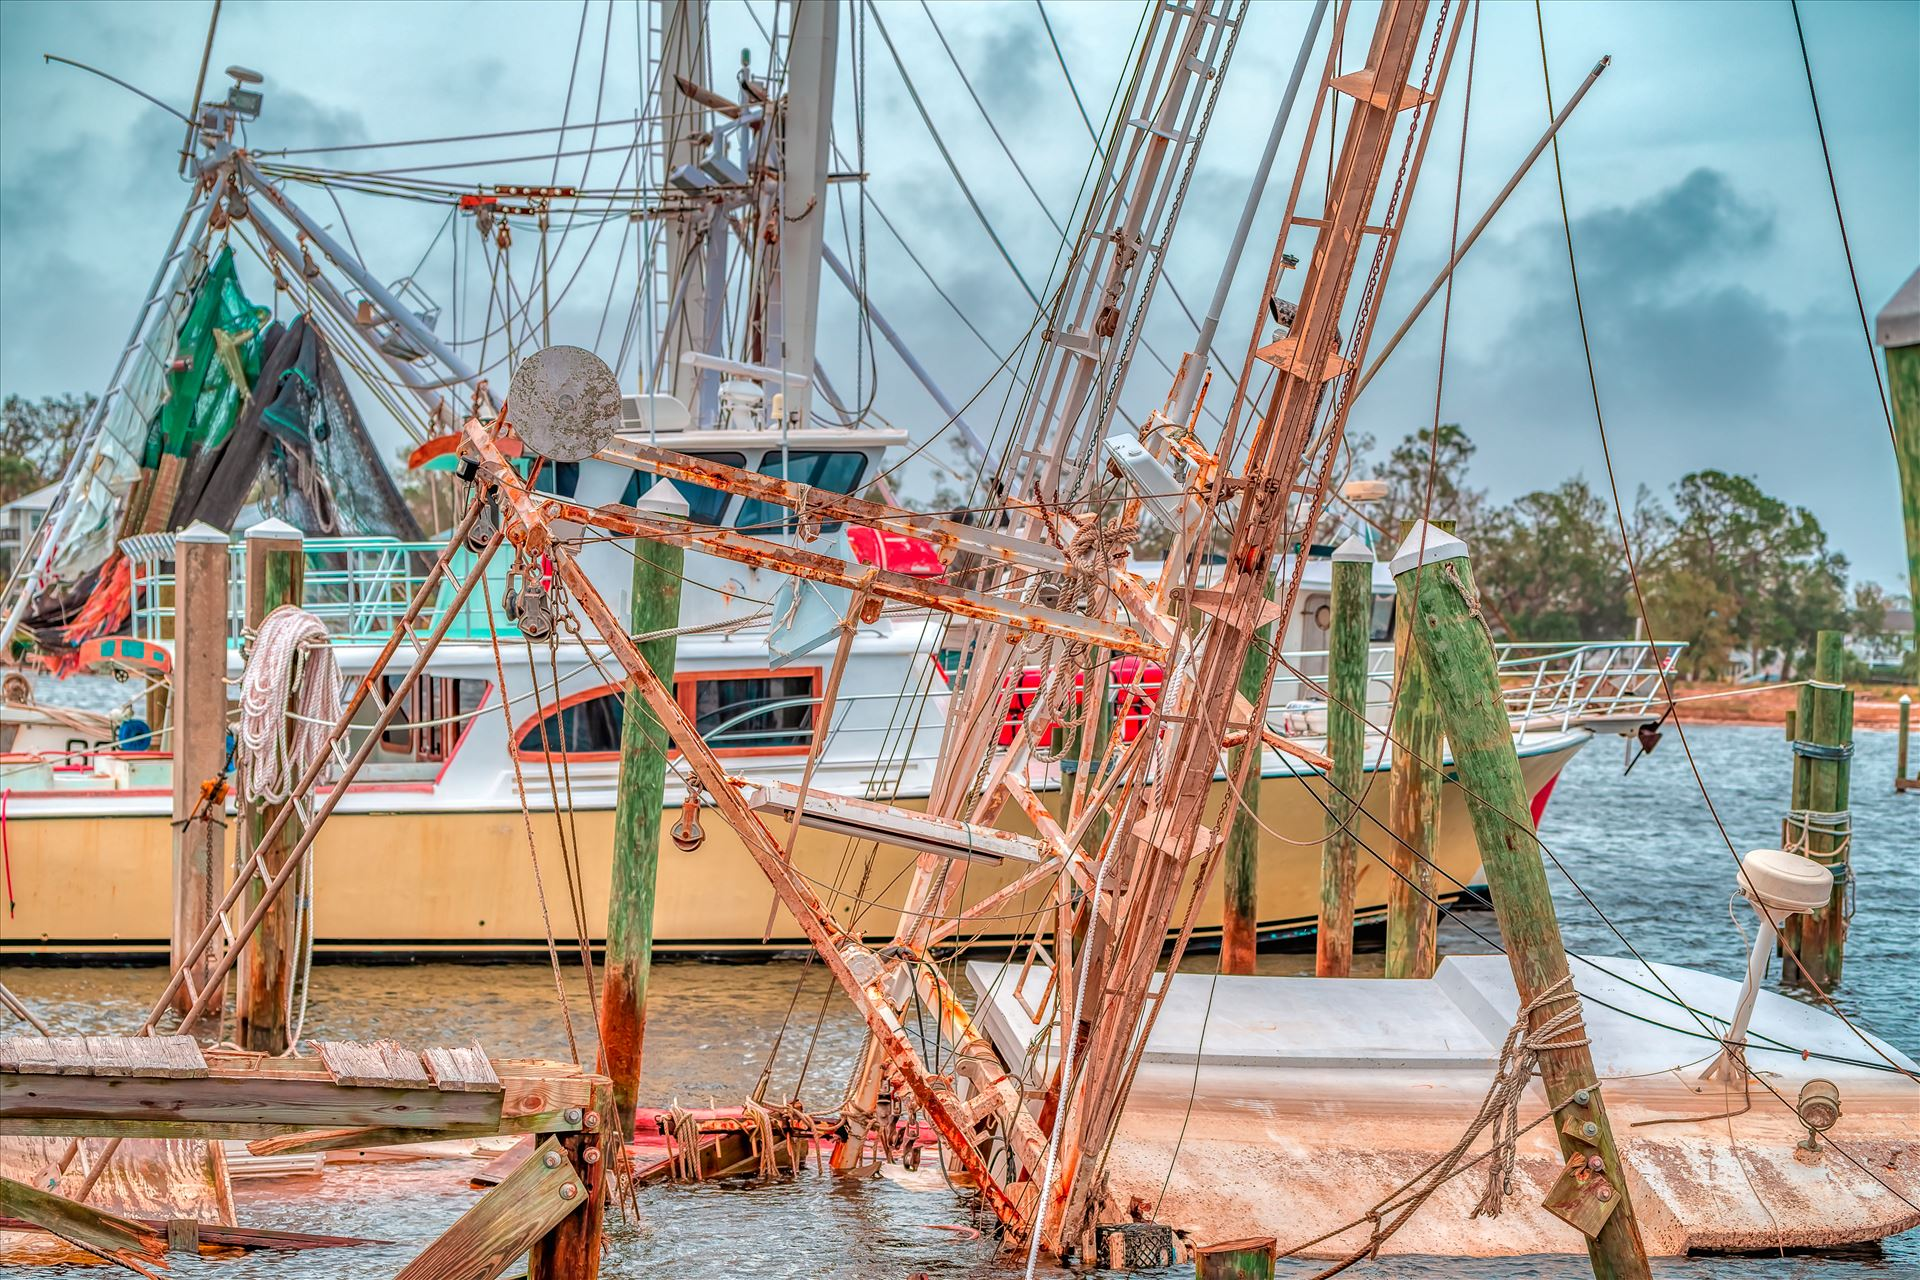 Hurricane Michael shrimpboat sunk, dock damaged by Terry Kelly Photography